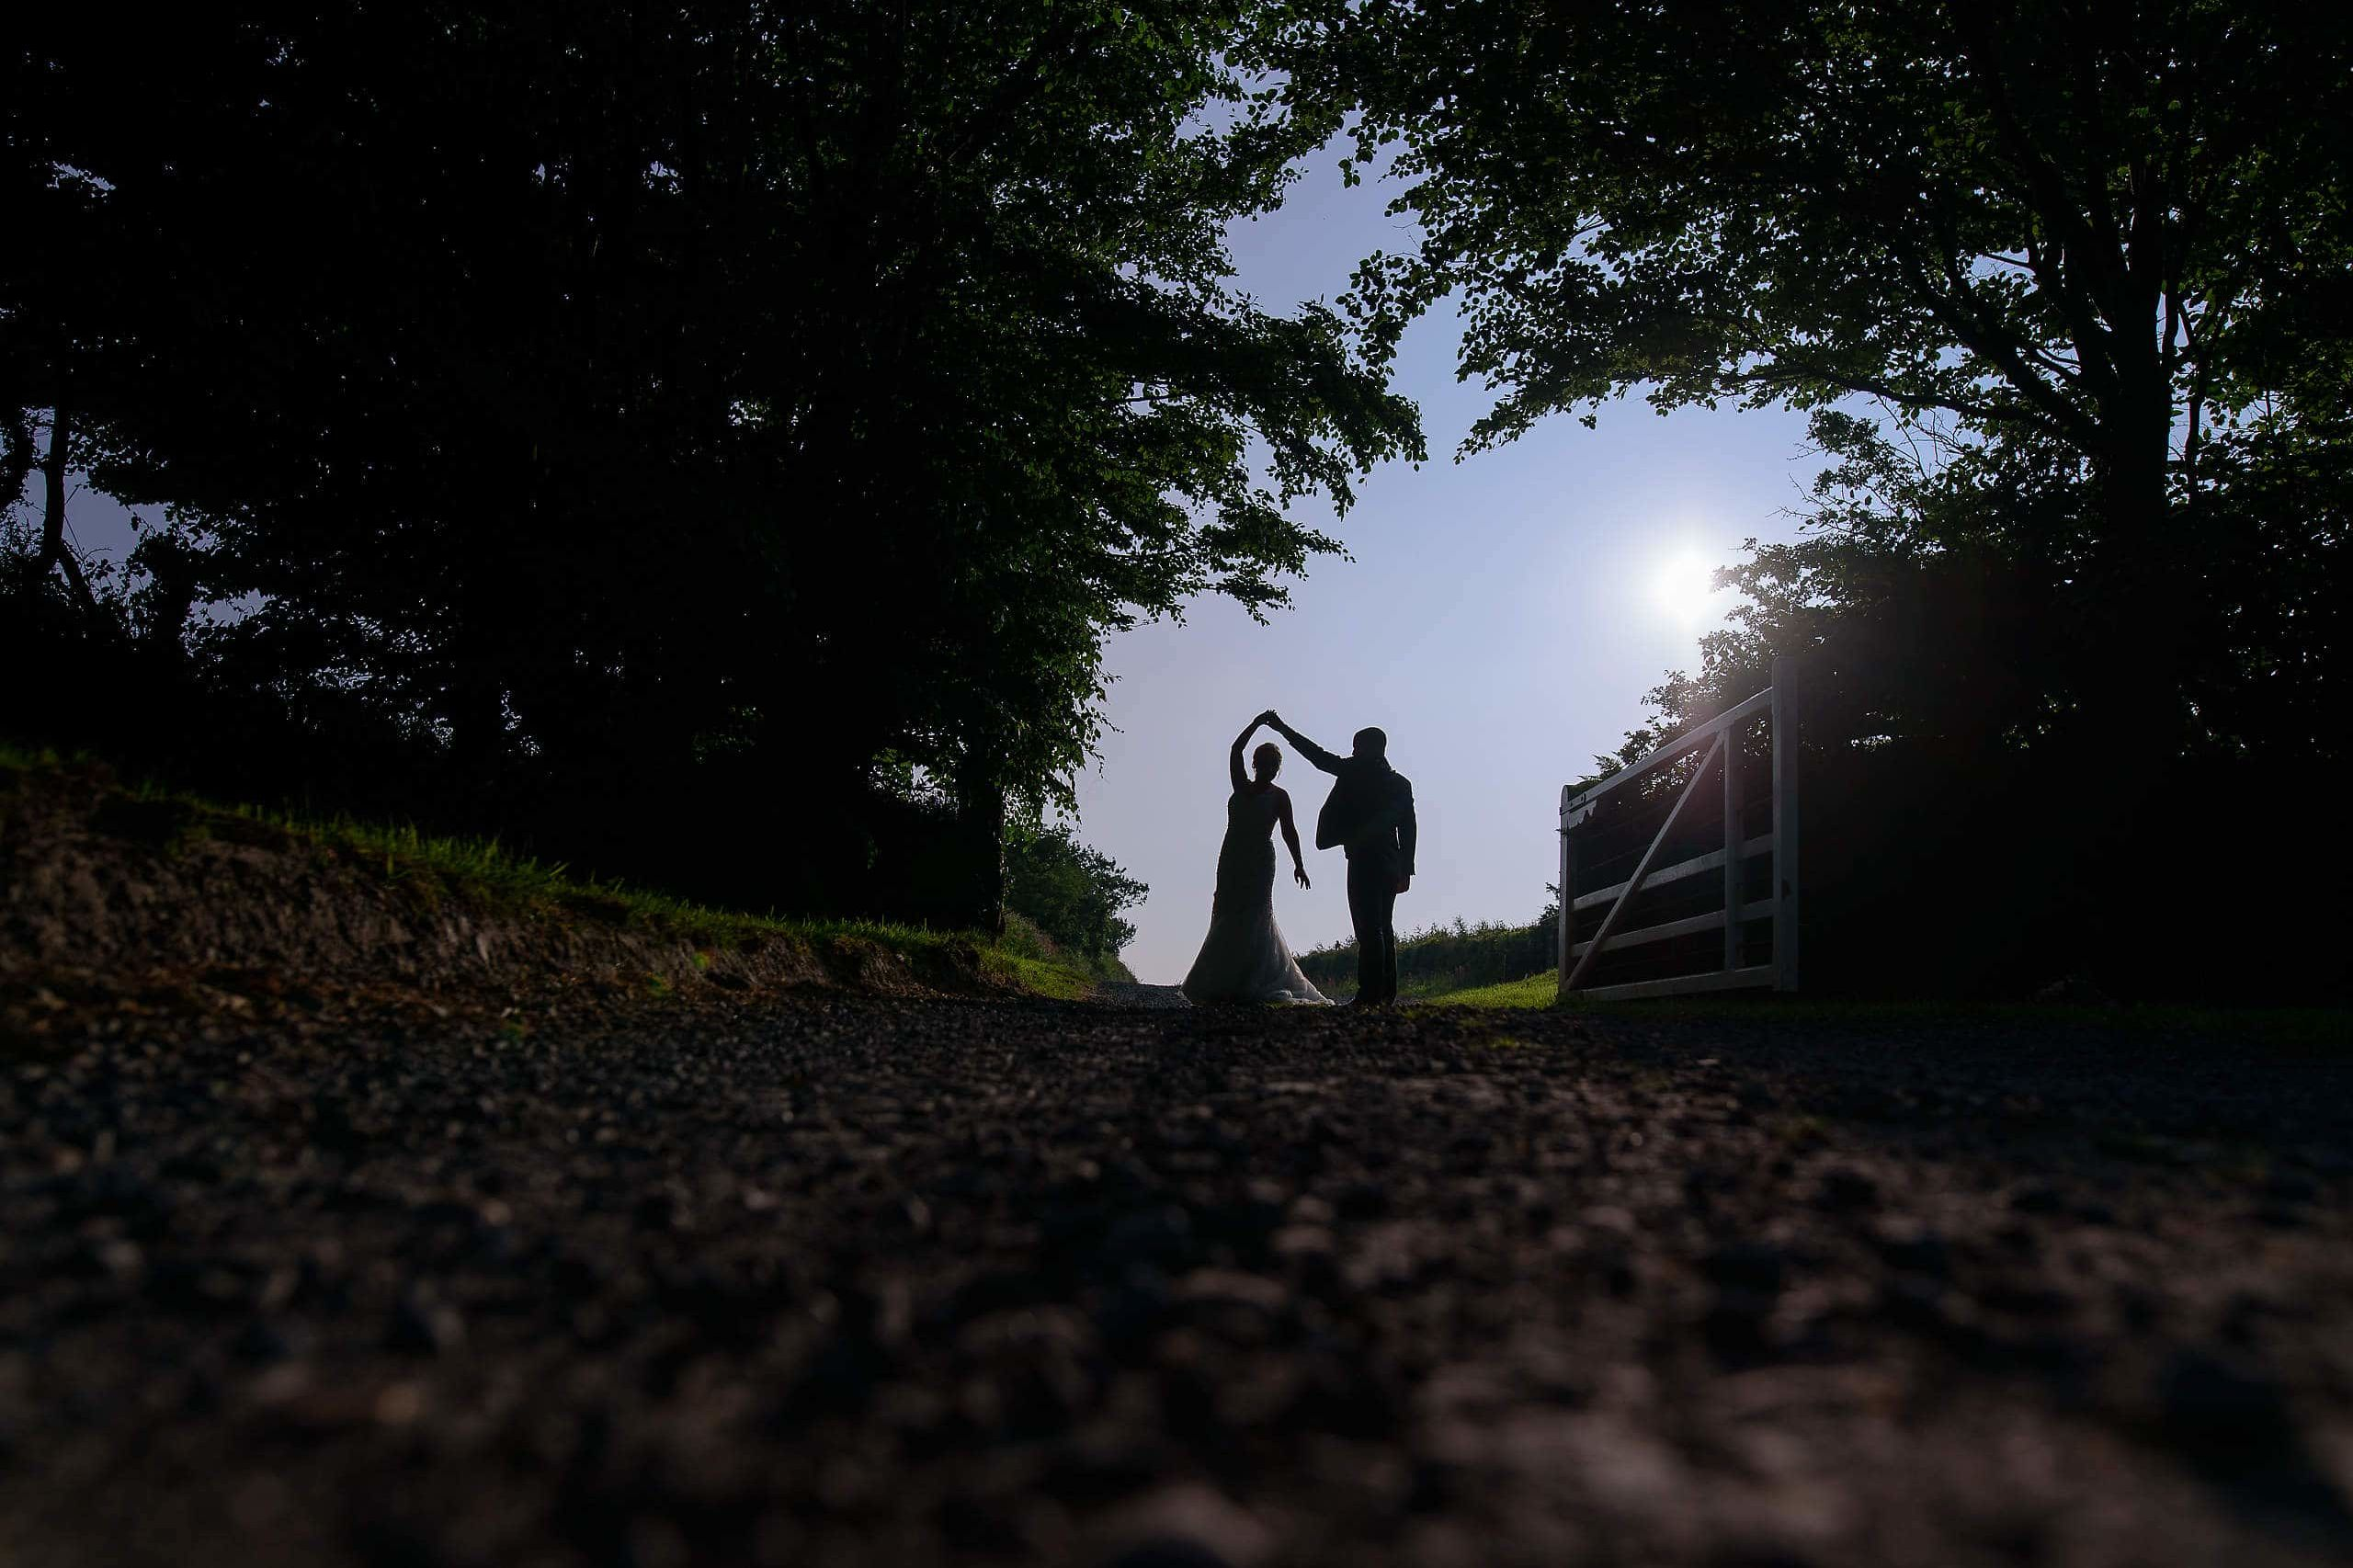 Trevenna Barns wedding photographer 2